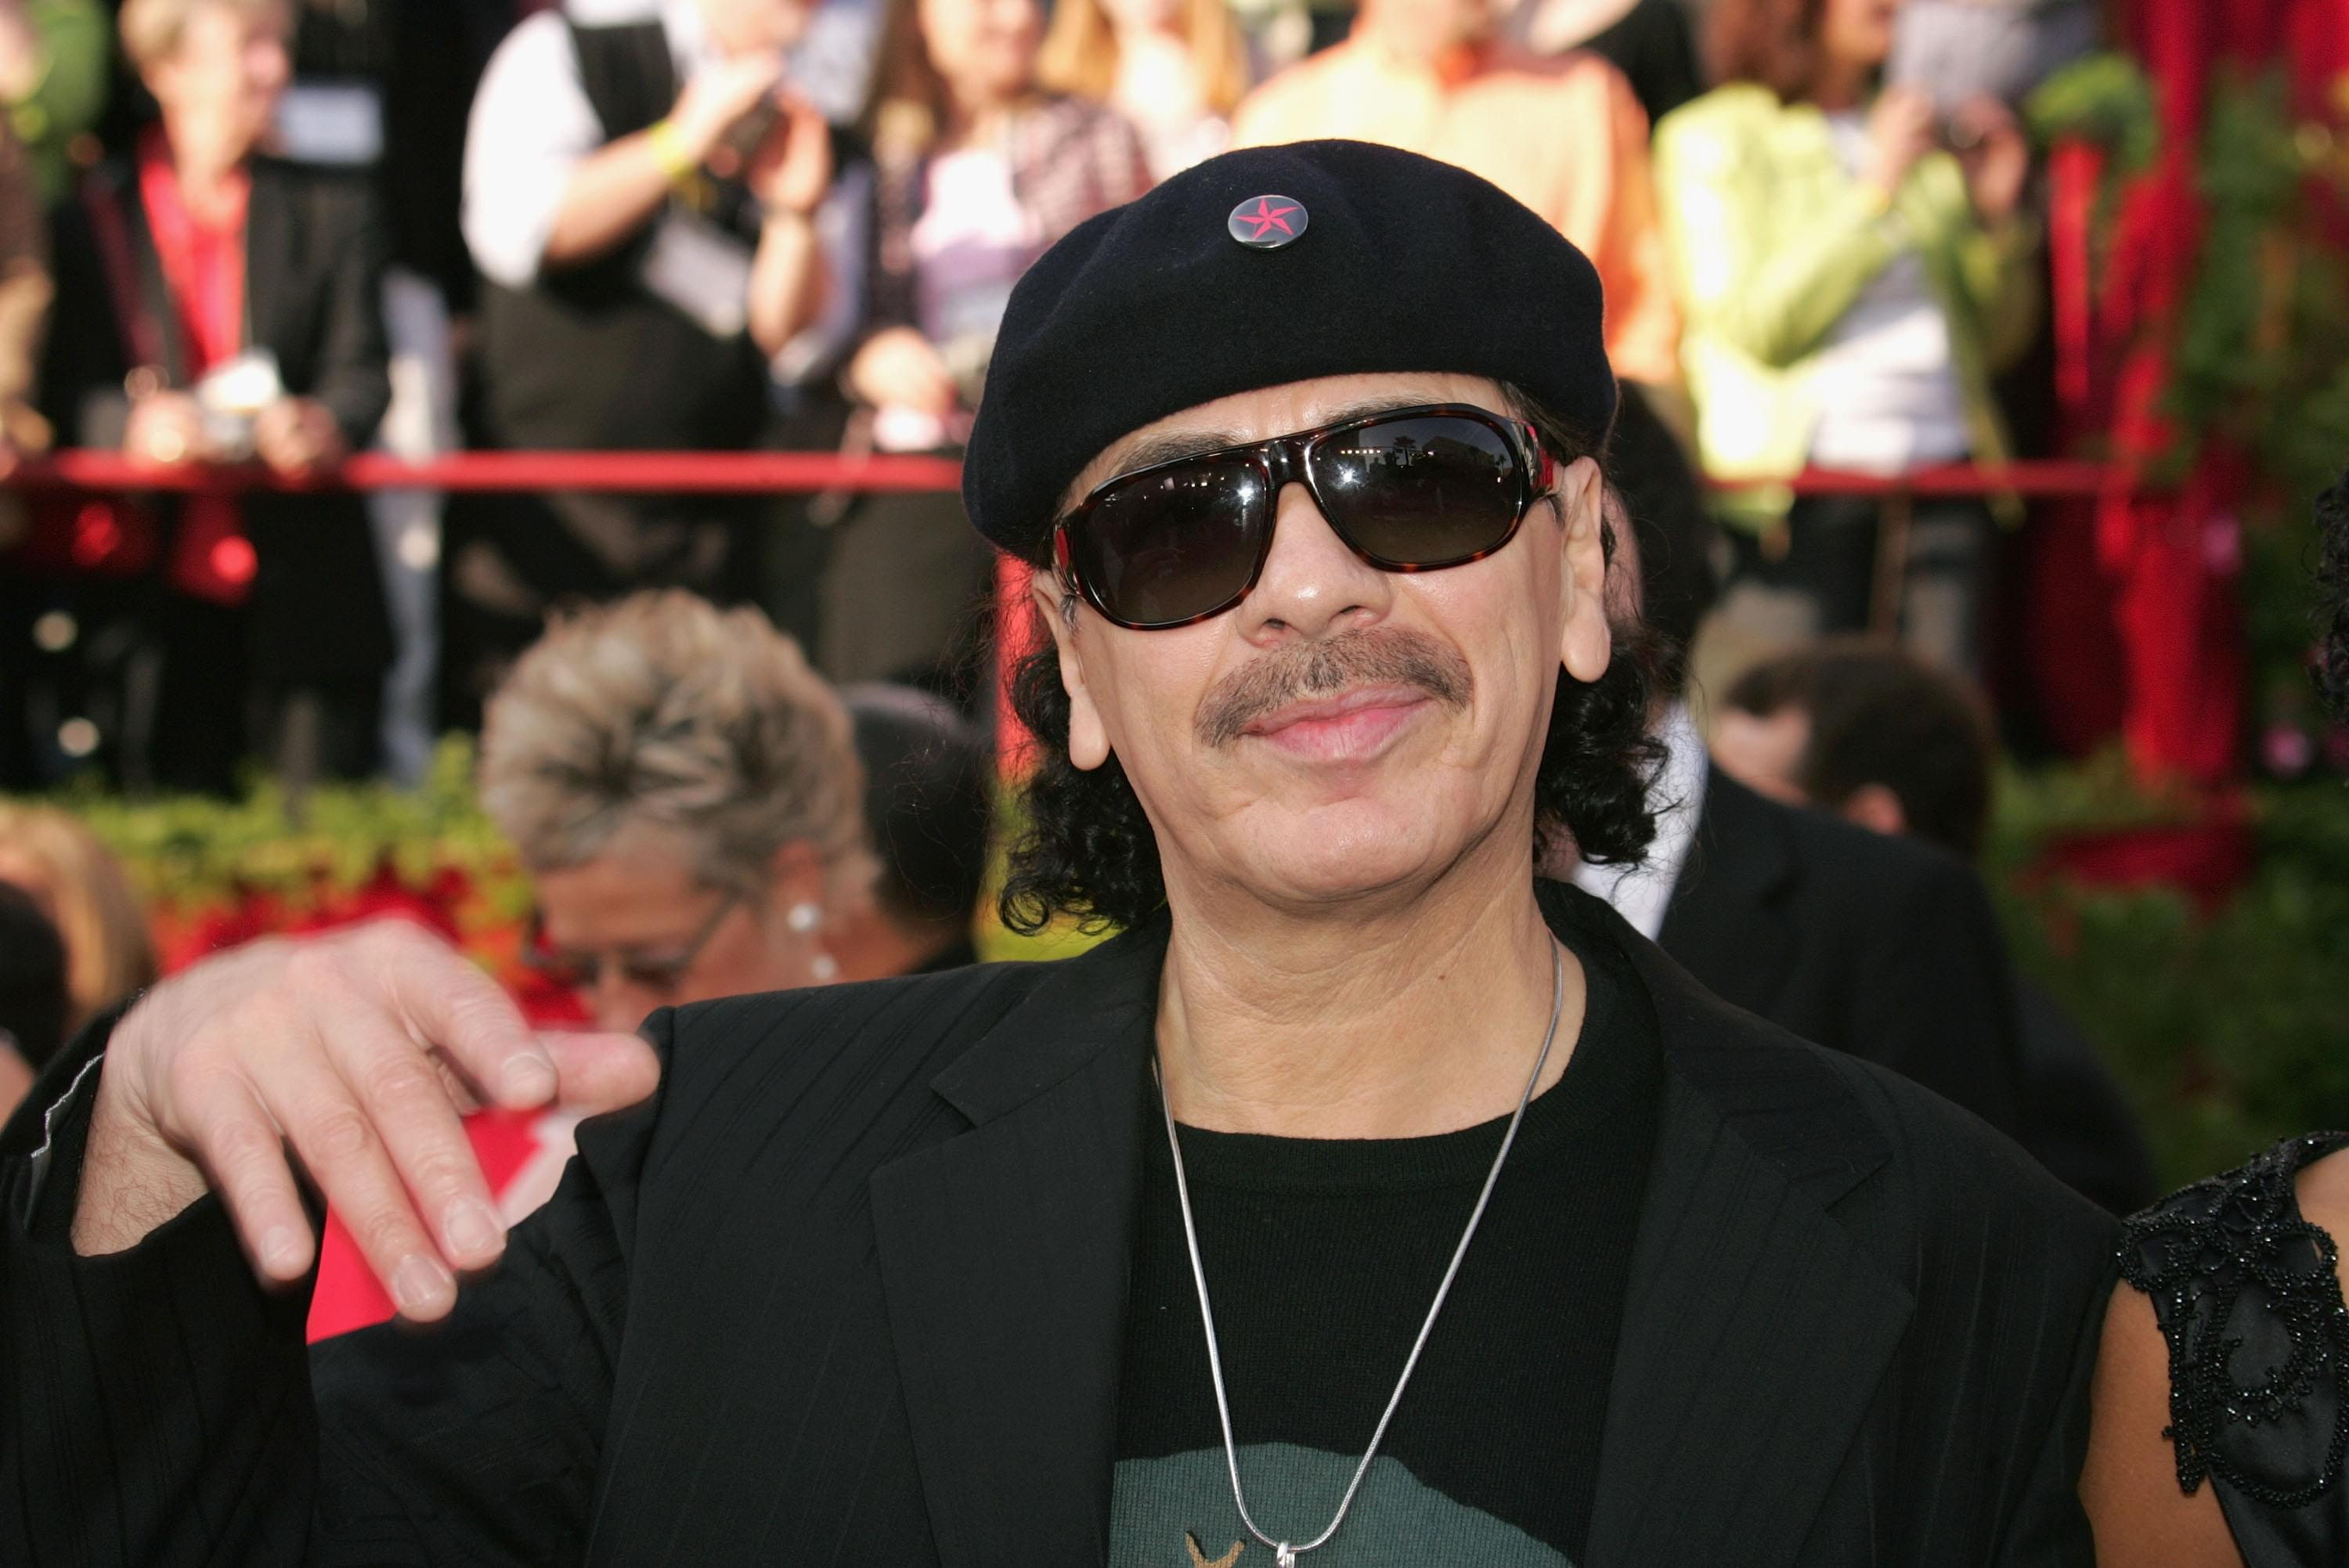 Carlos Santana to develop premium cannabis